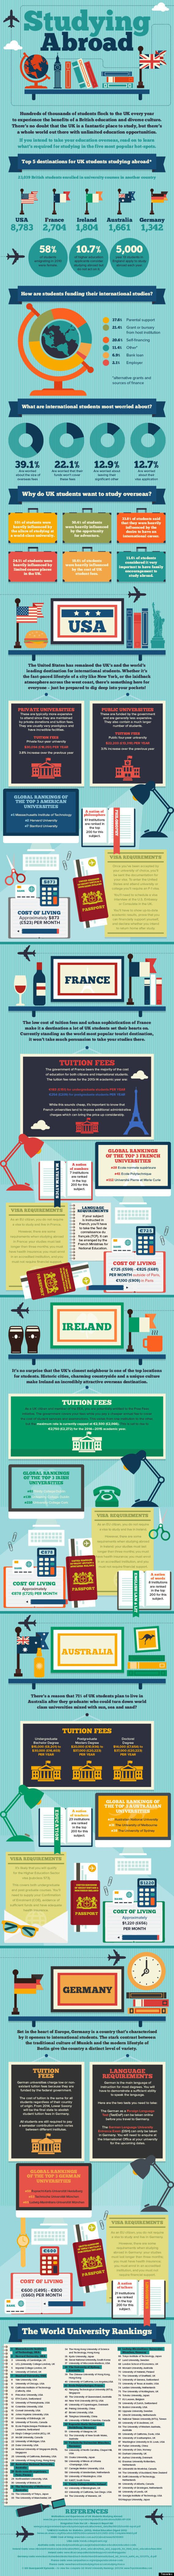 Your Complete Guide To Being An International Student And Studying